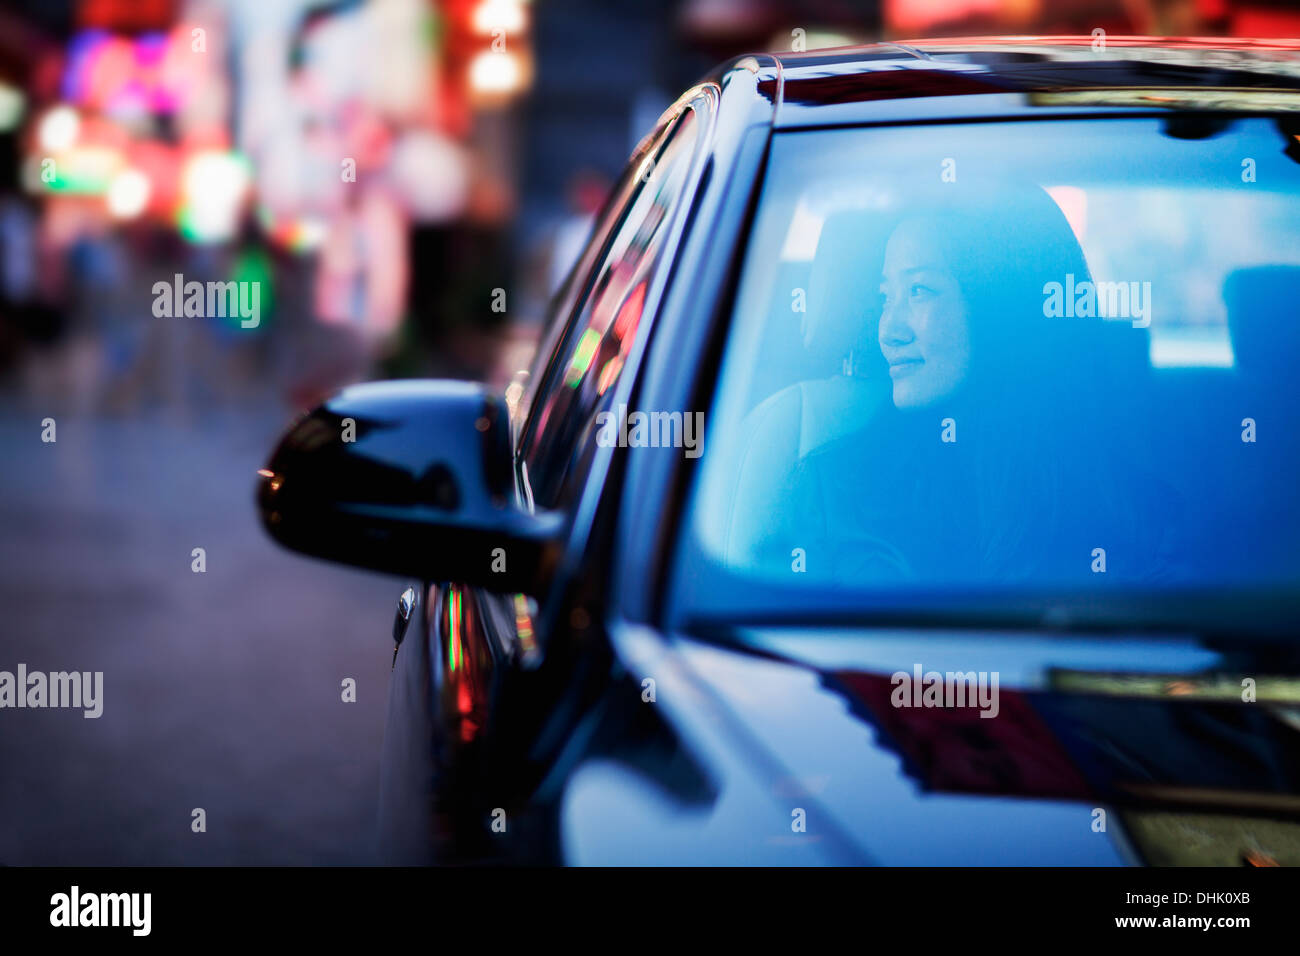 Serene woman looking through car window at the city nightlife - Stock Image